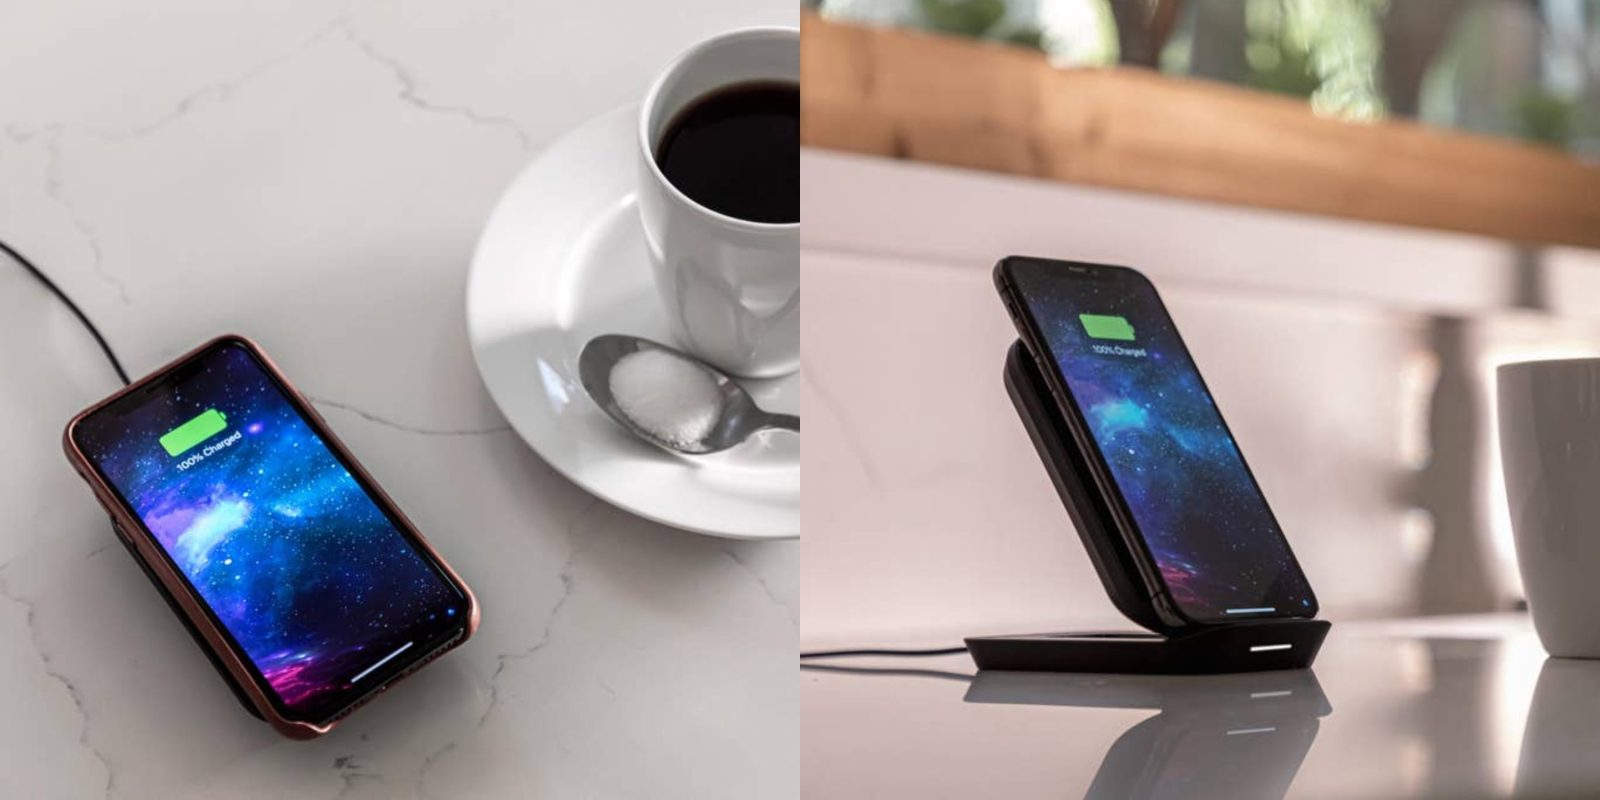 Update Ultrasuede Comes To The Whole Lineup Mophie Launches Convertible Stand To Pad Wireless Charger For Iphone 9to5mac 5 out of 5 stars. pad wireless charger for iphone